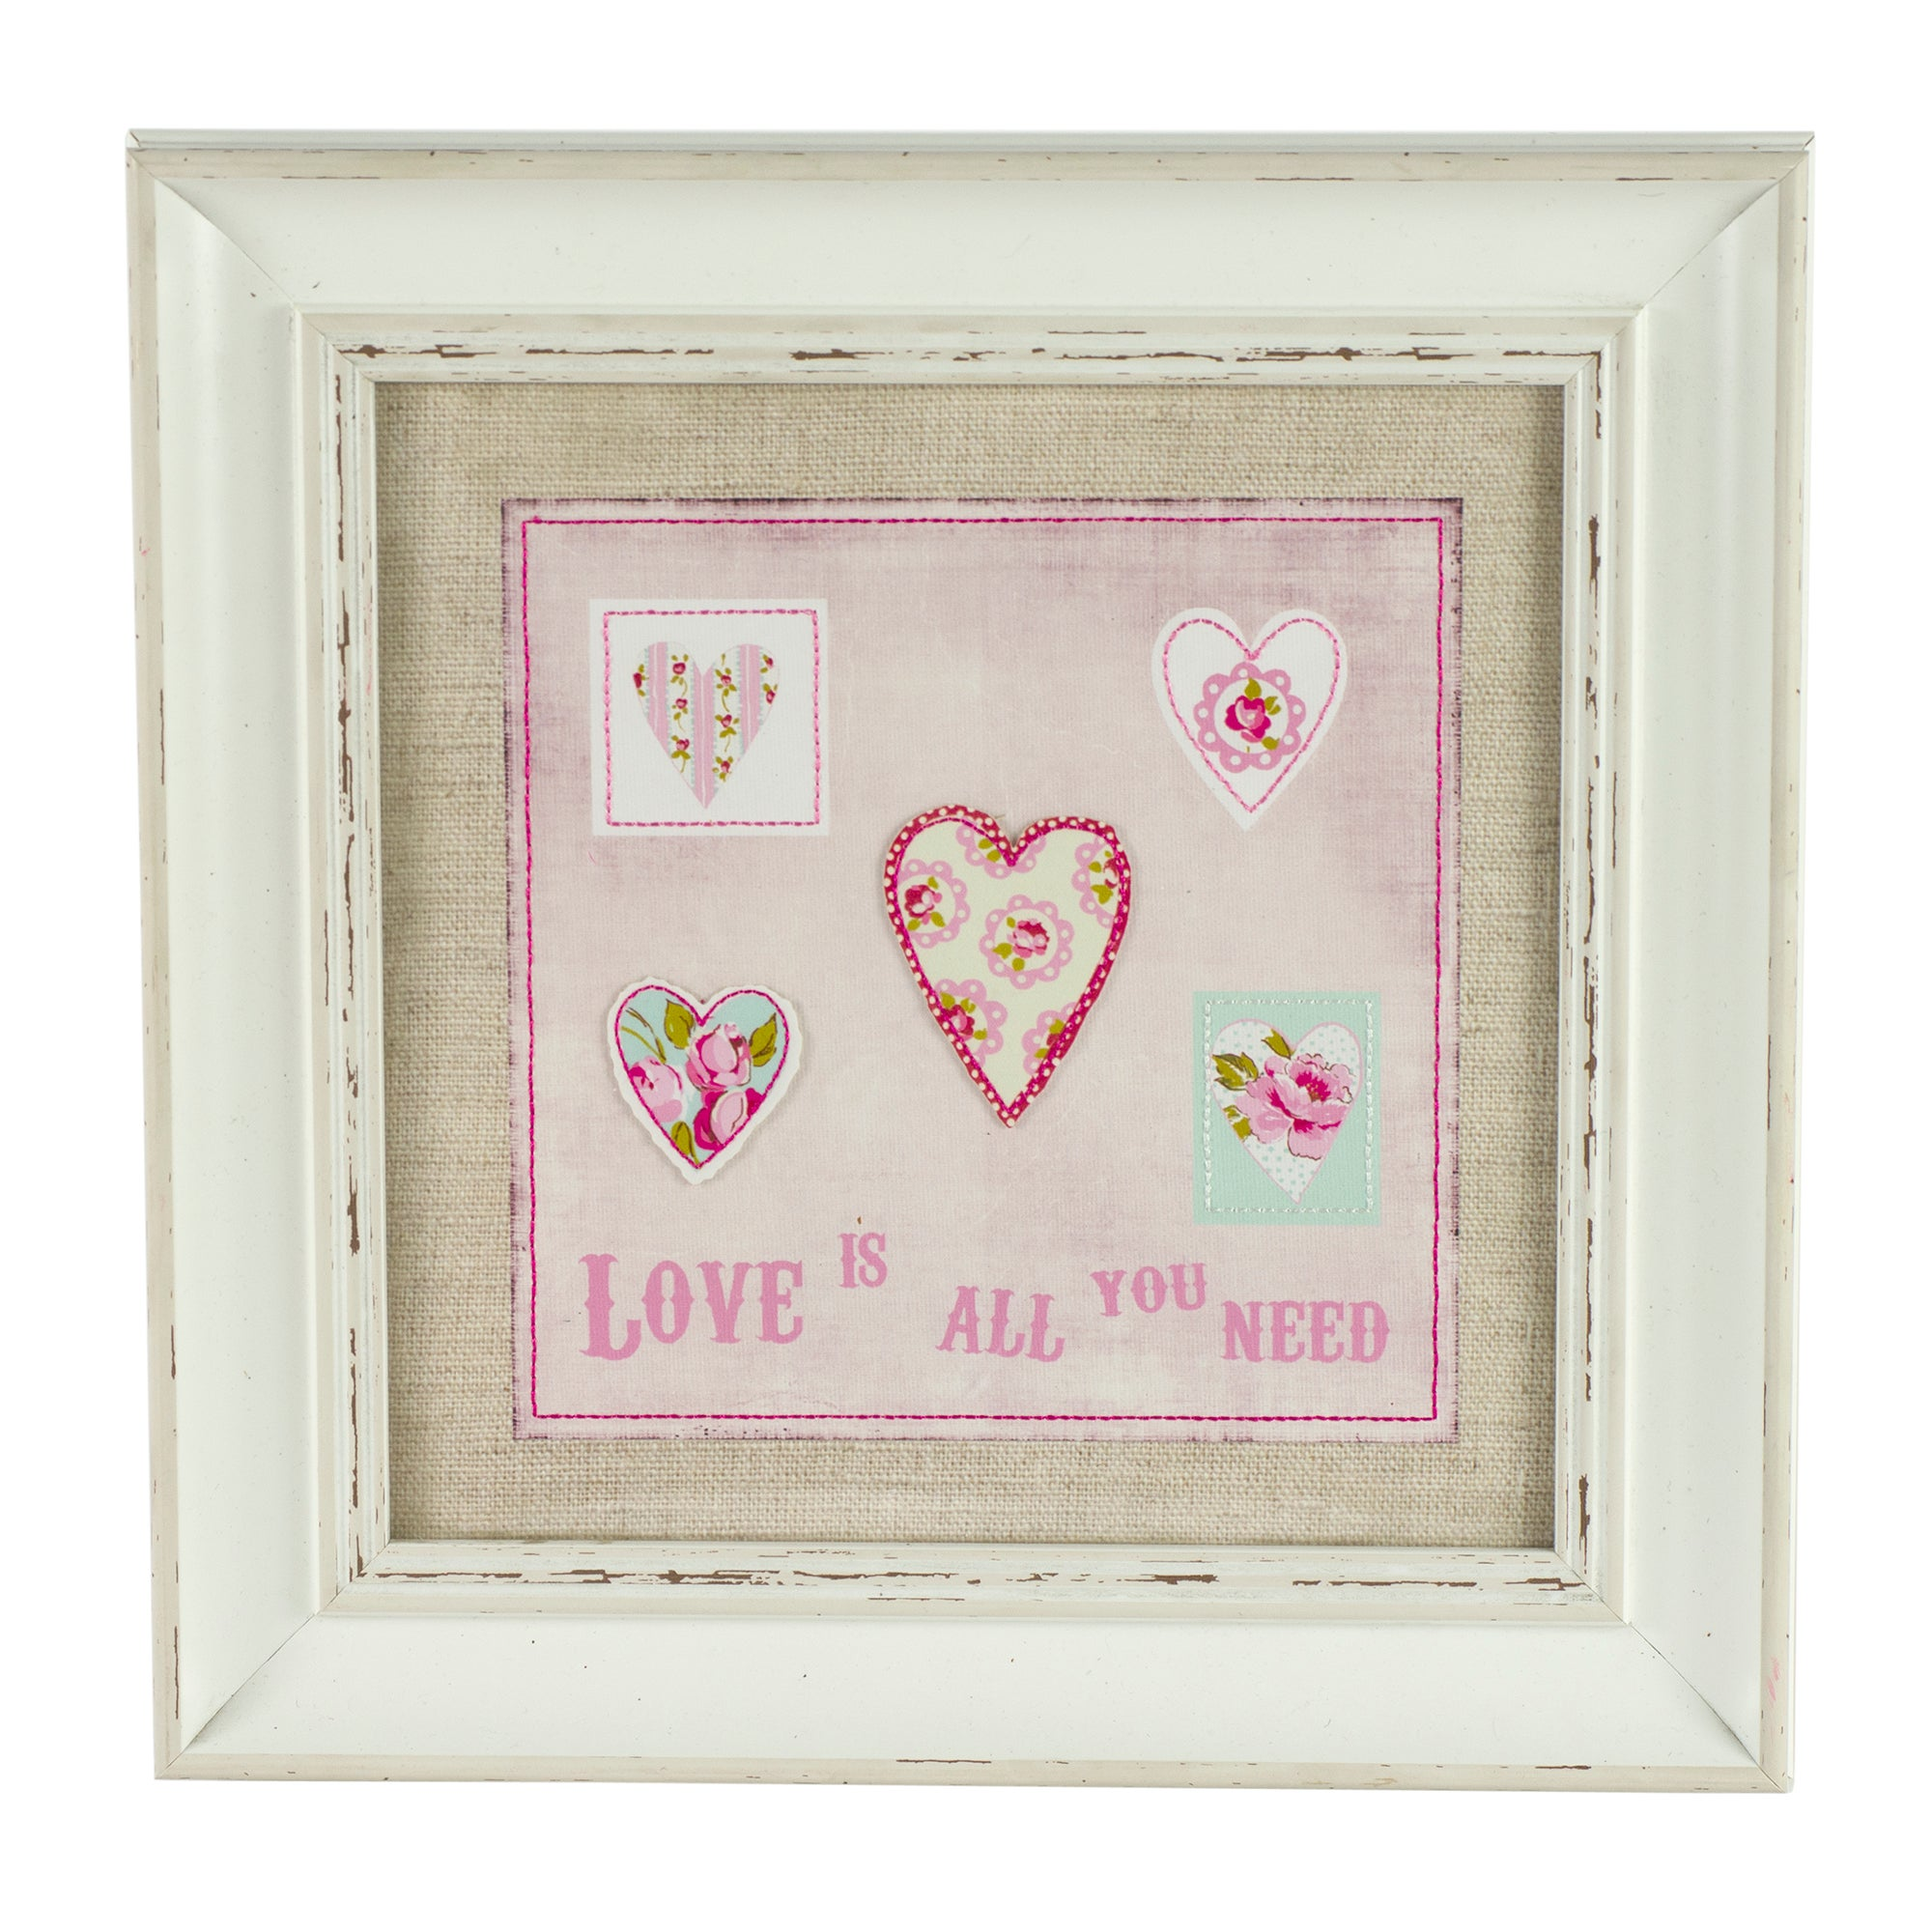 Rose and Ellis Clarendon Collection Framed Heart Picture